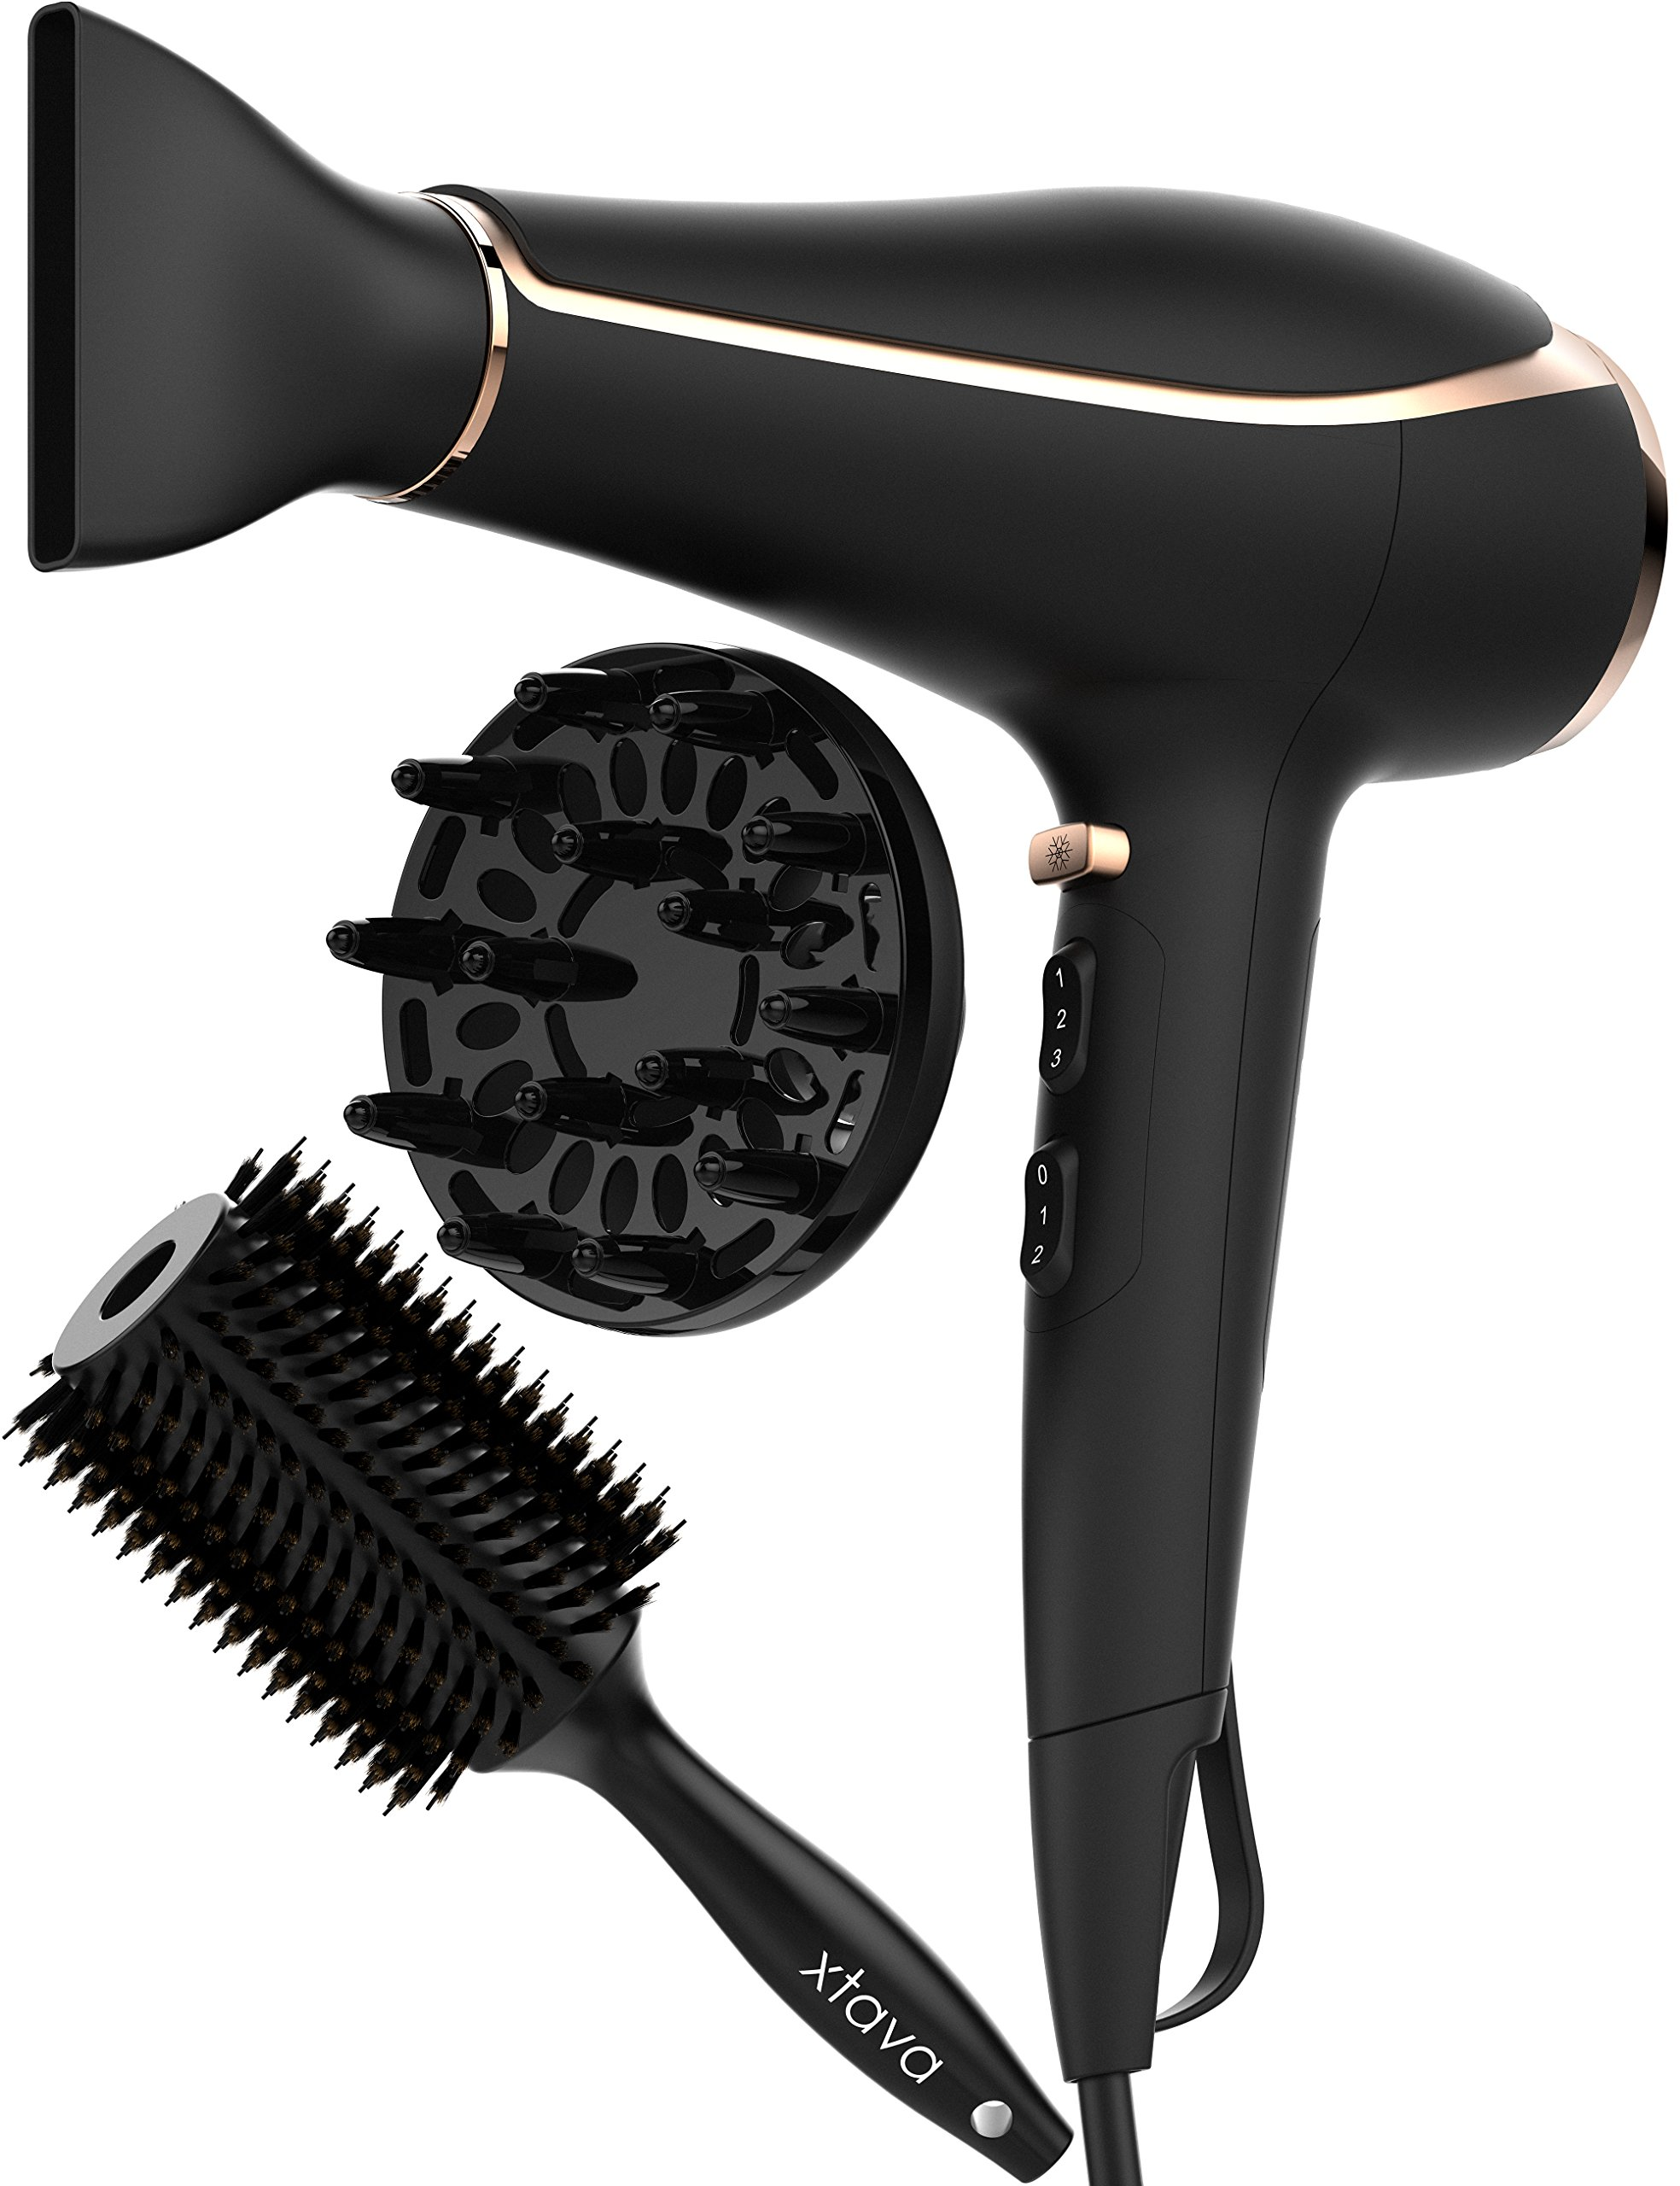 xtava Ionic Blow Dryer Voluminous Toolkit with Hair Dryer Diffuser and Round Body Hair Brush - Professional Quality Hair Dryer with Diffuser & Nozzle - Travel Hair Dryer with up to 80% Less Frizz